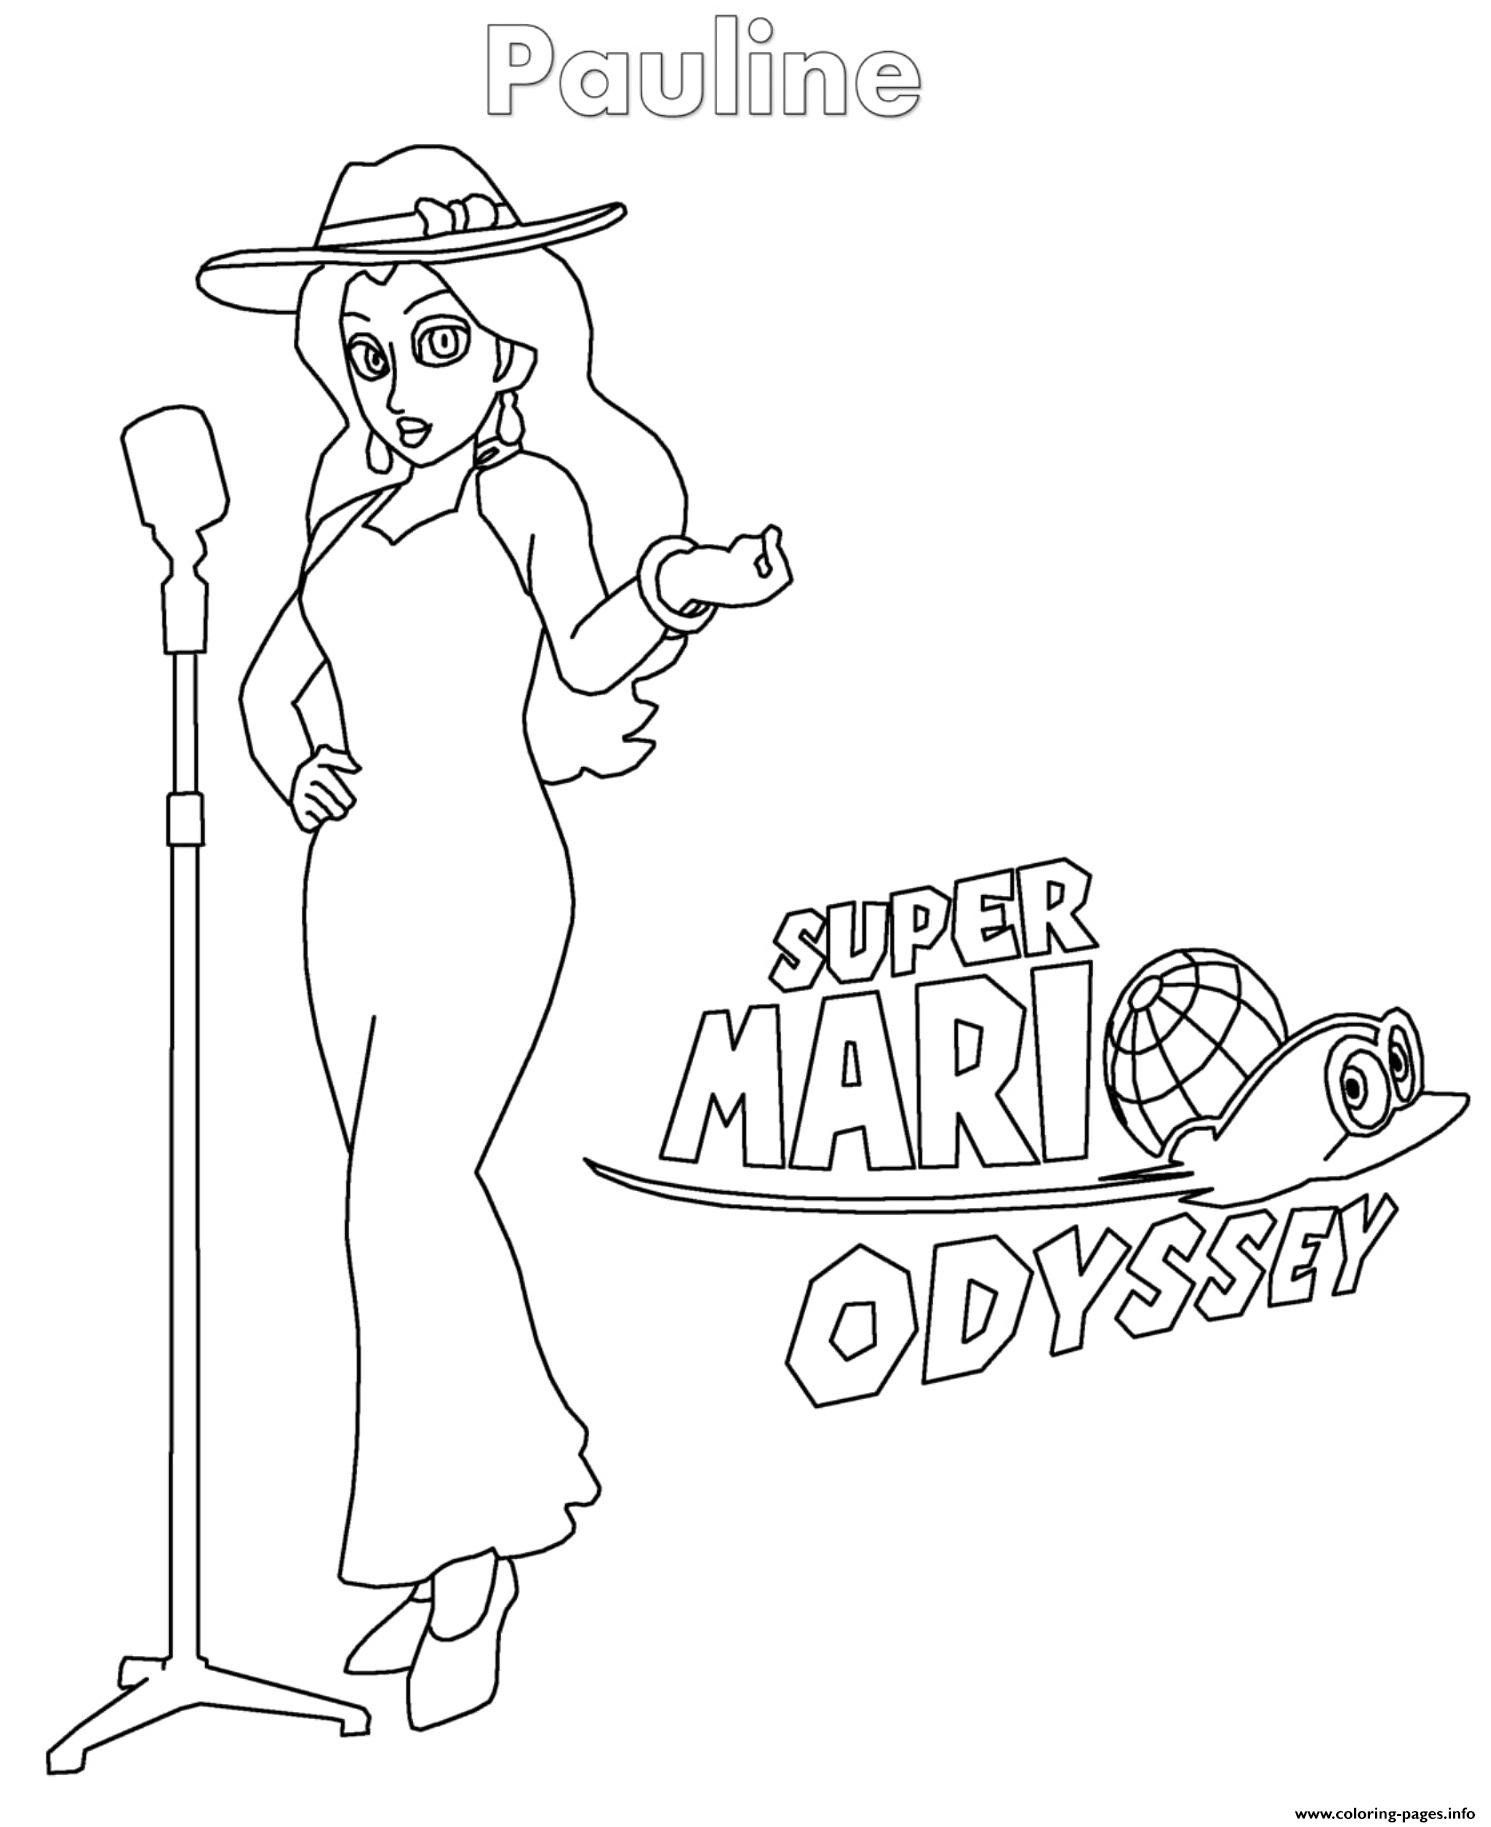 Mario Odyssey Coloring Pages Pauline Nintendo Coloring Pages Printable Super Mario Coloring Pages Mario Coloring Pages Elsa Coloring Pages